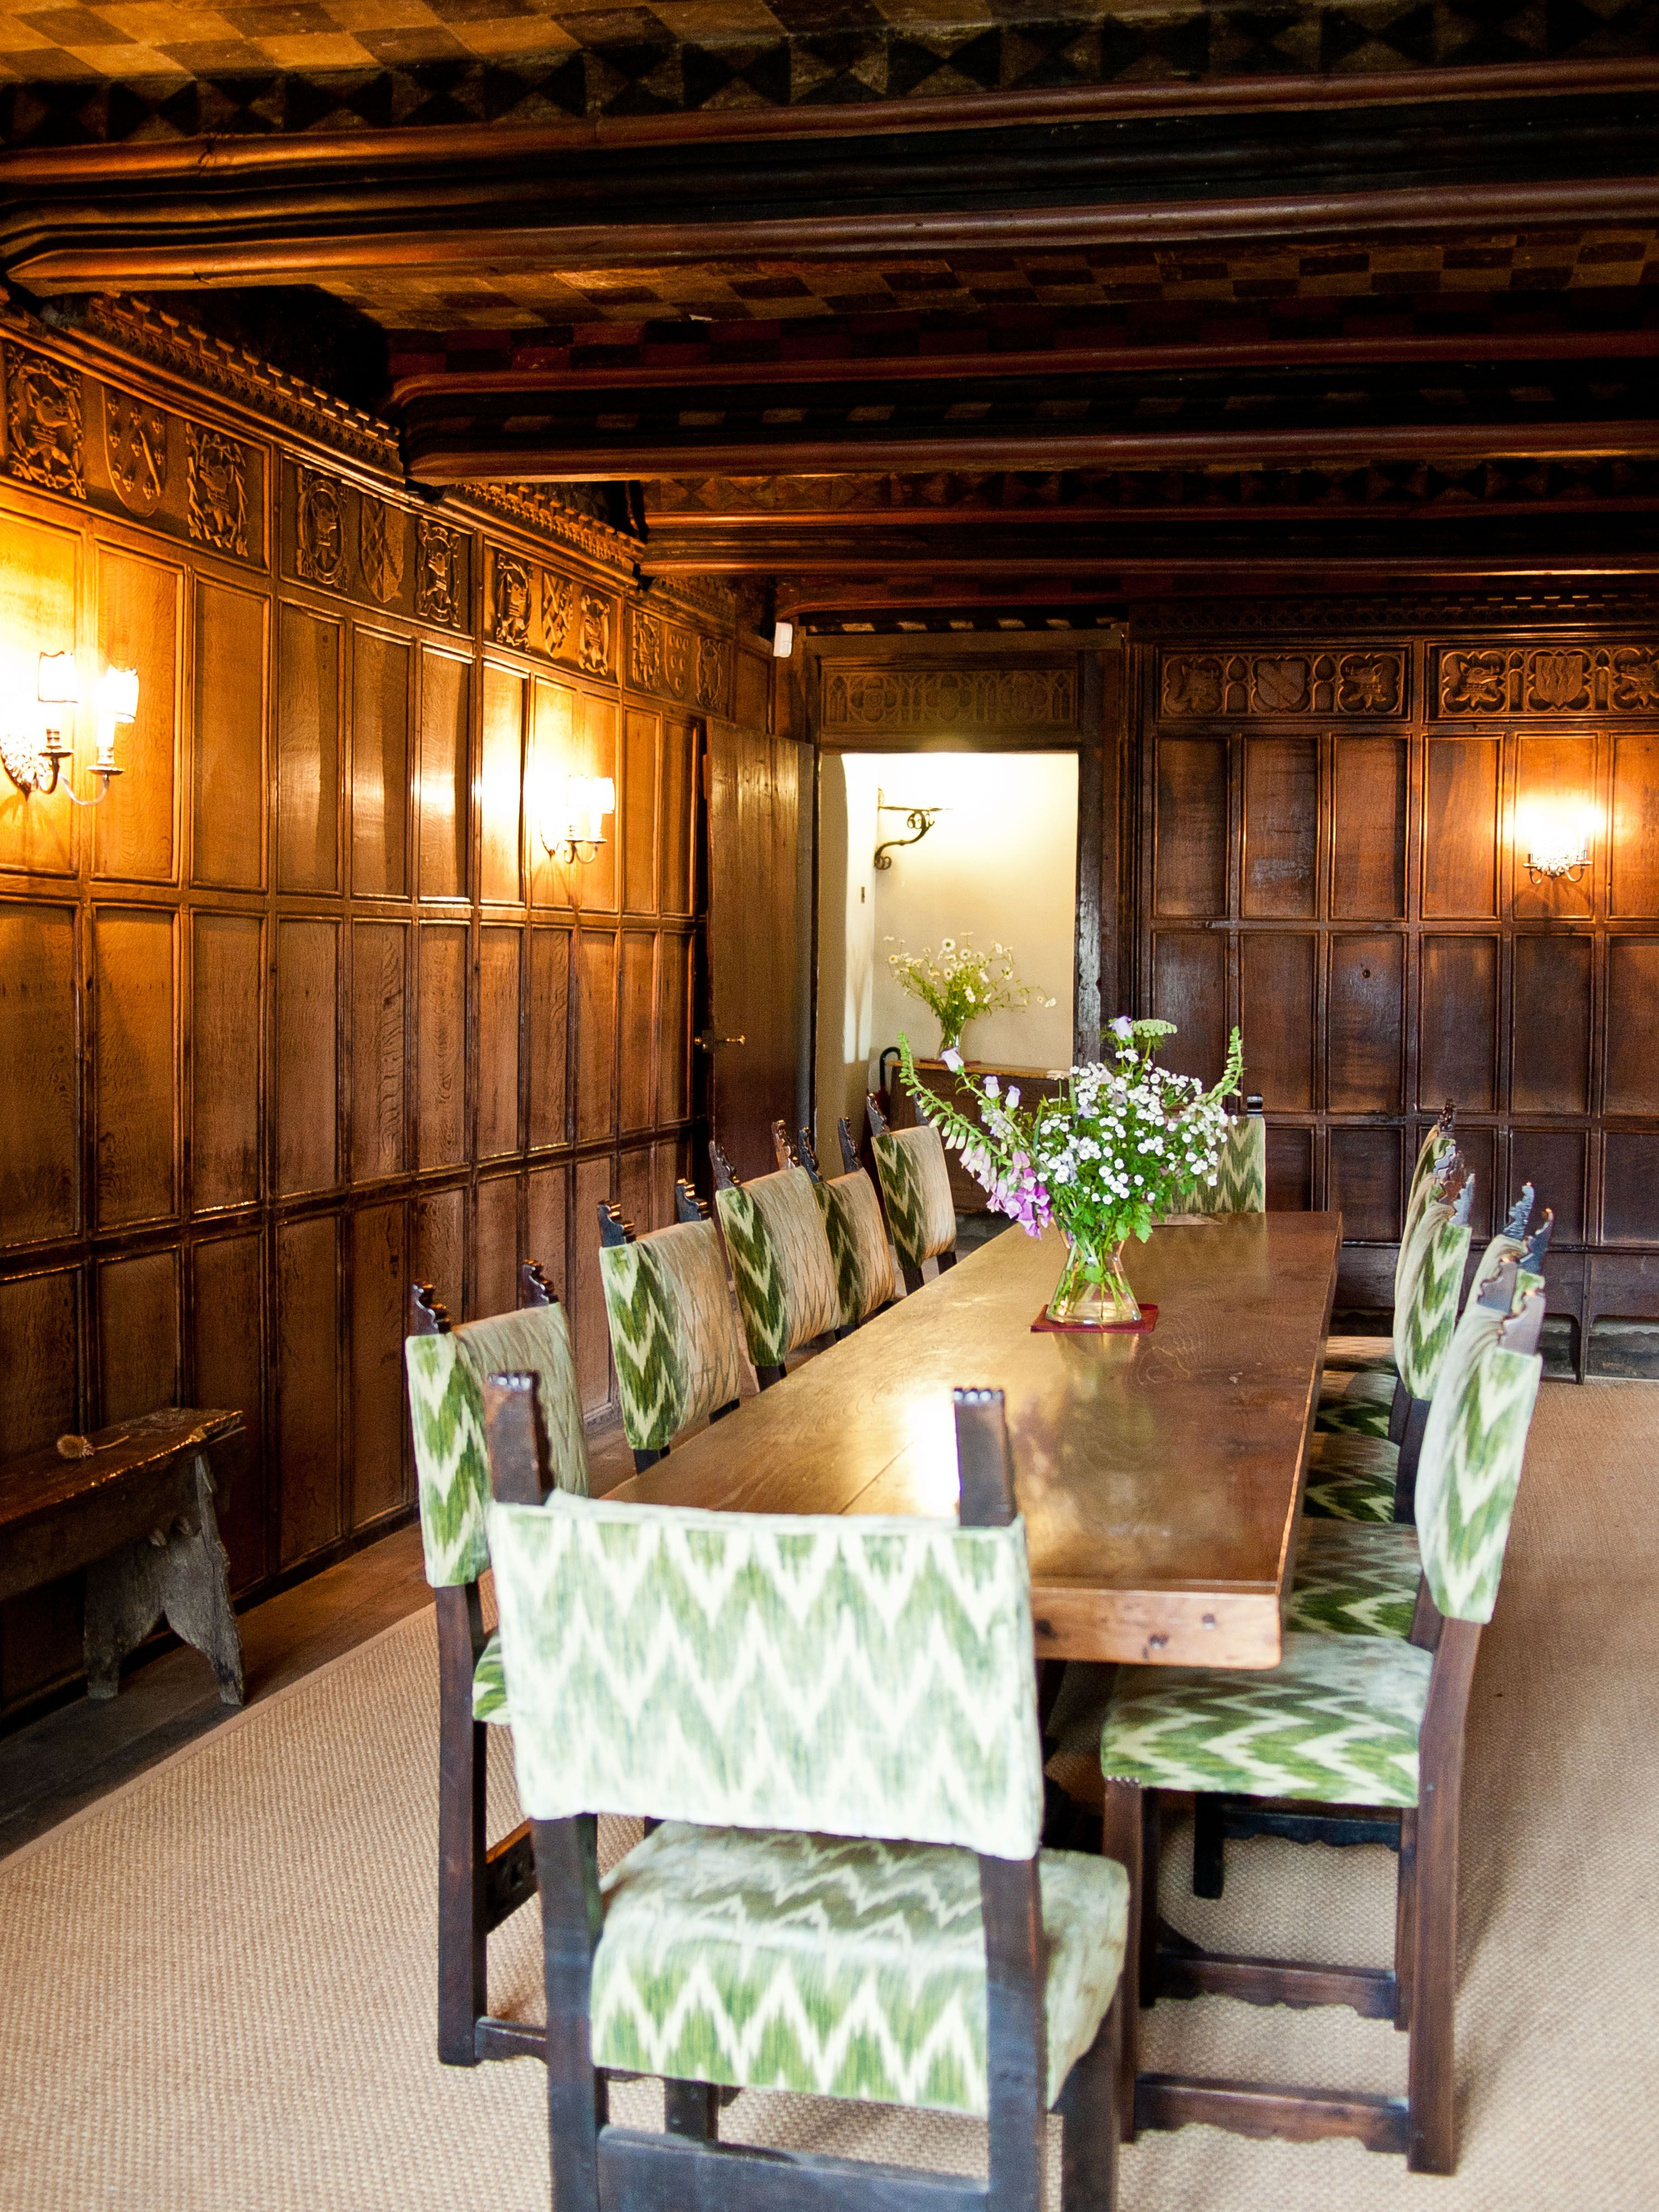 Haddon Hall dining room with antique flamestitch